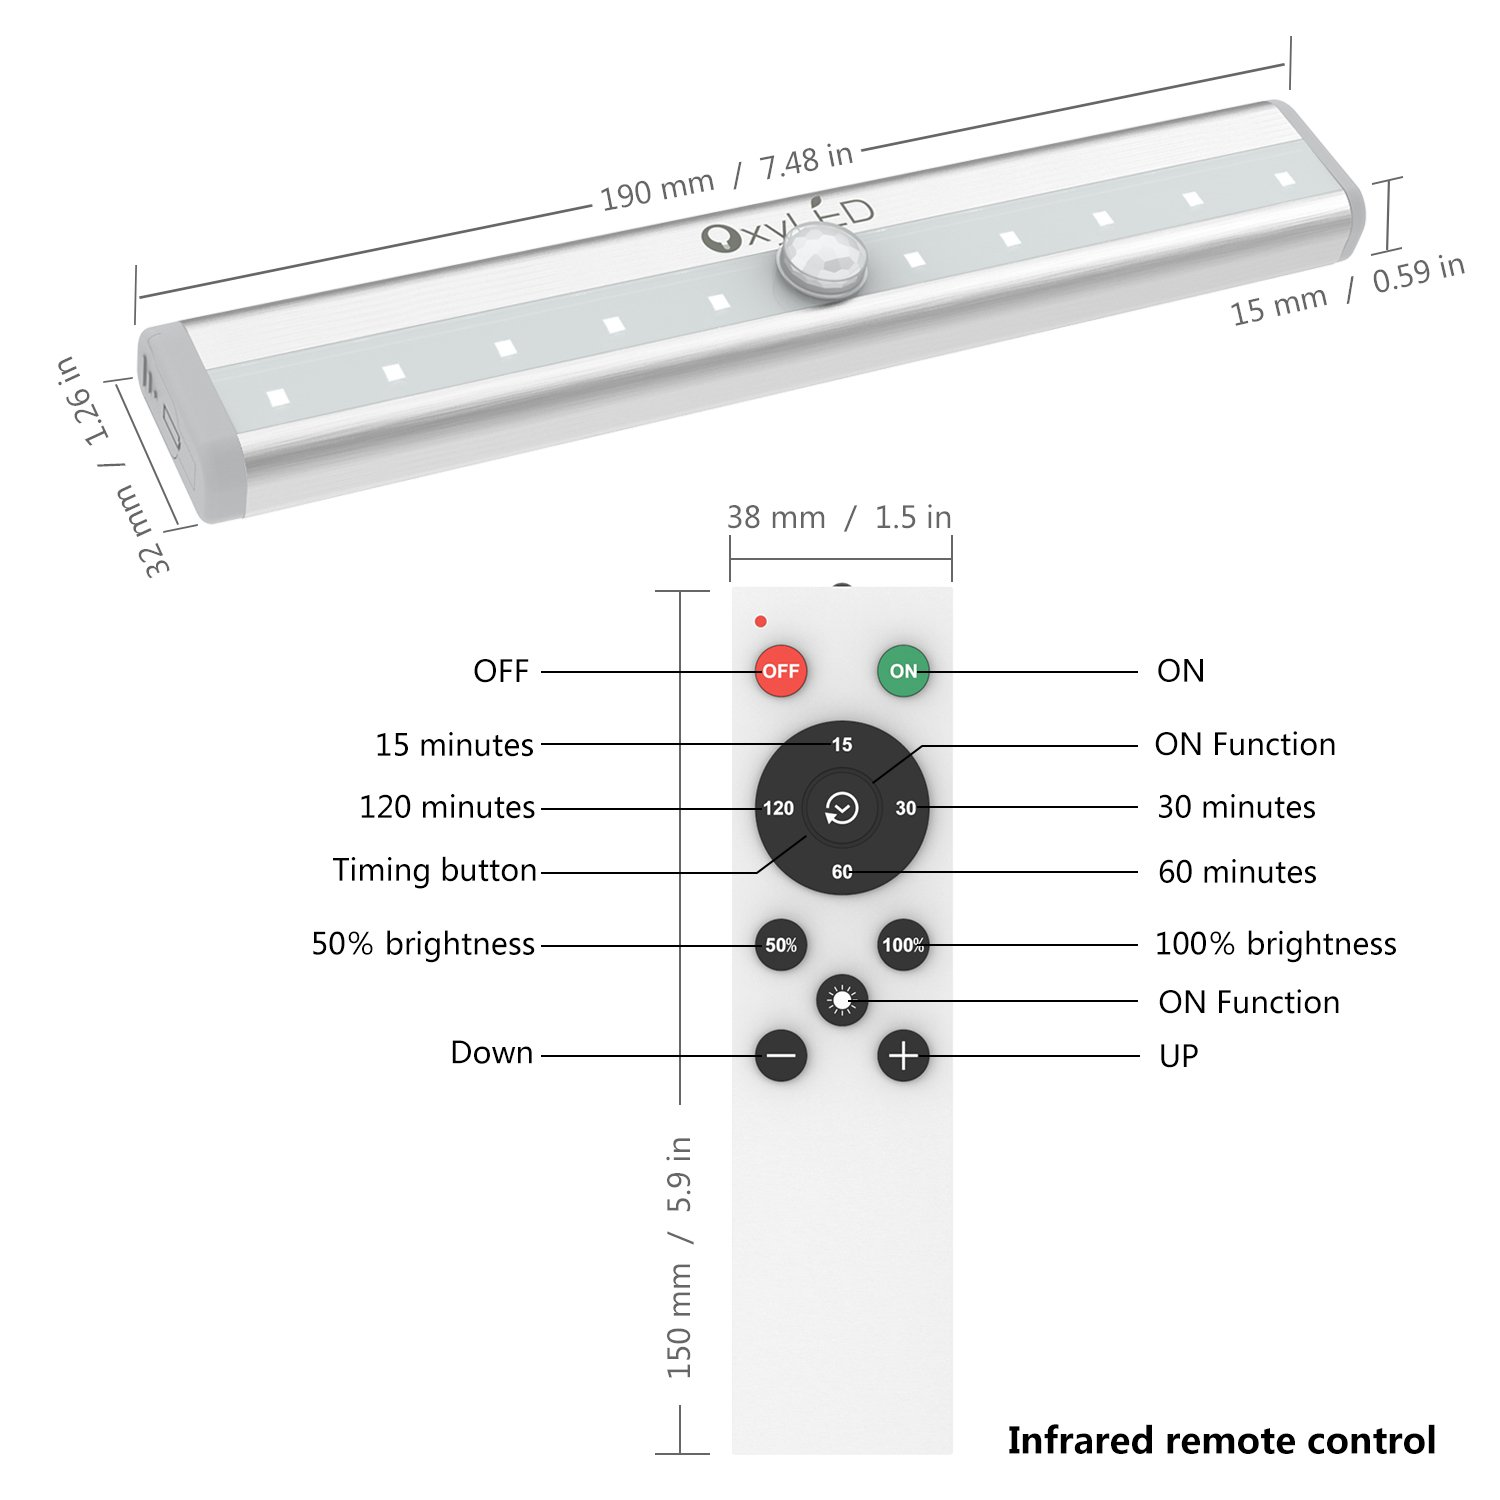 Closet Lights with Remote Control, OxyLED 10-LED Battery Operated Night Lights Cordless Under Cabinet Lighting, LED Night Light Bar with Magnetic Strip for Closet, Cabinet, Wardrobe, Hallway(3 Pack) by OxyLED (Image #7)